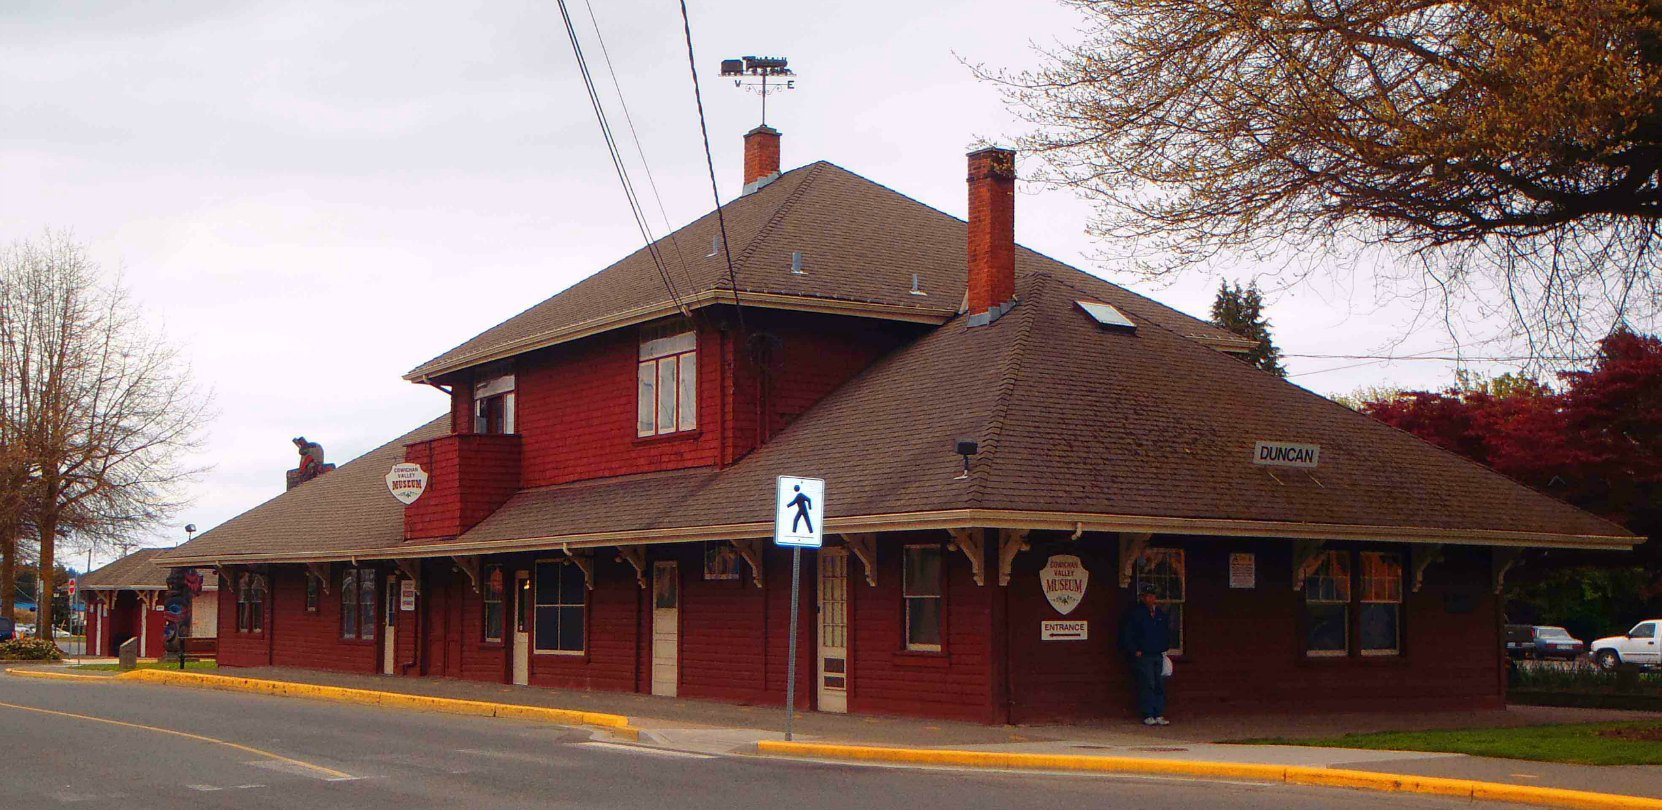 The former E&N Railway Station, Canada Avenue, Duncan, B.C.